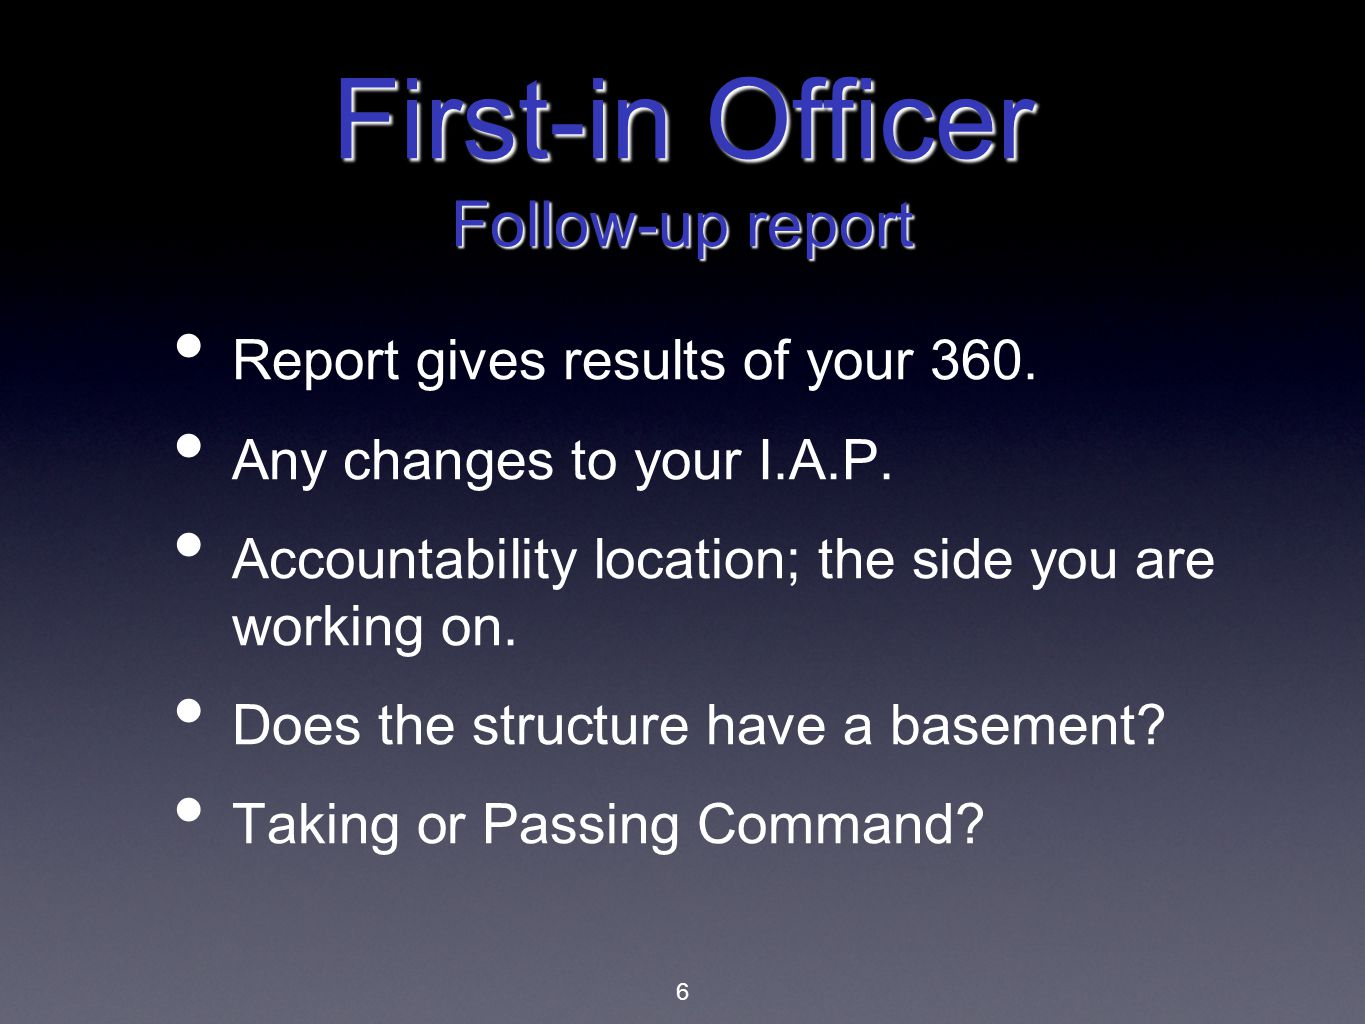 First-in Officer Follow-up report